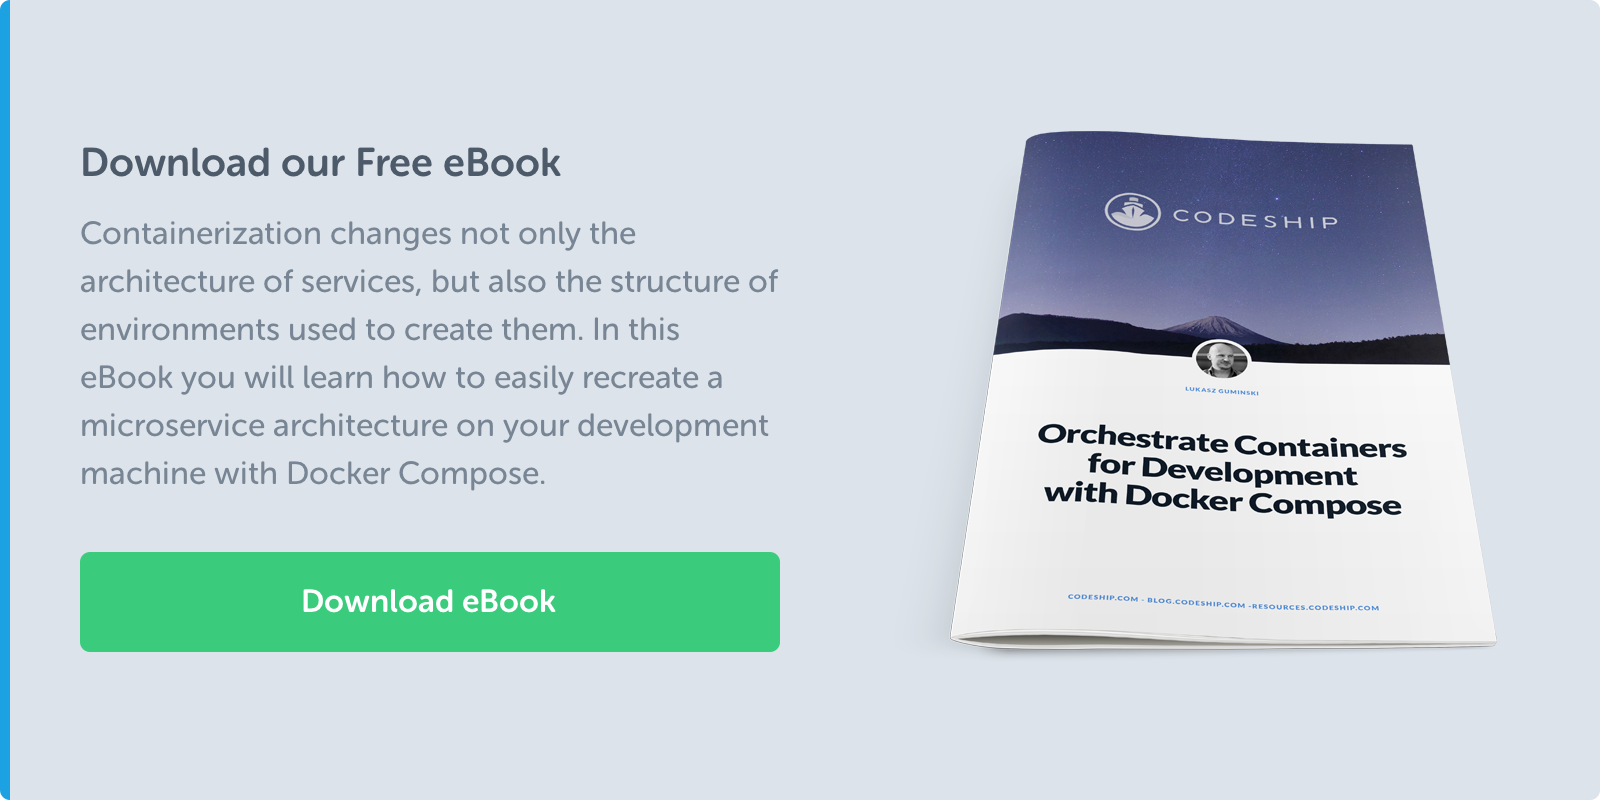 eBook_orchestrate_containers